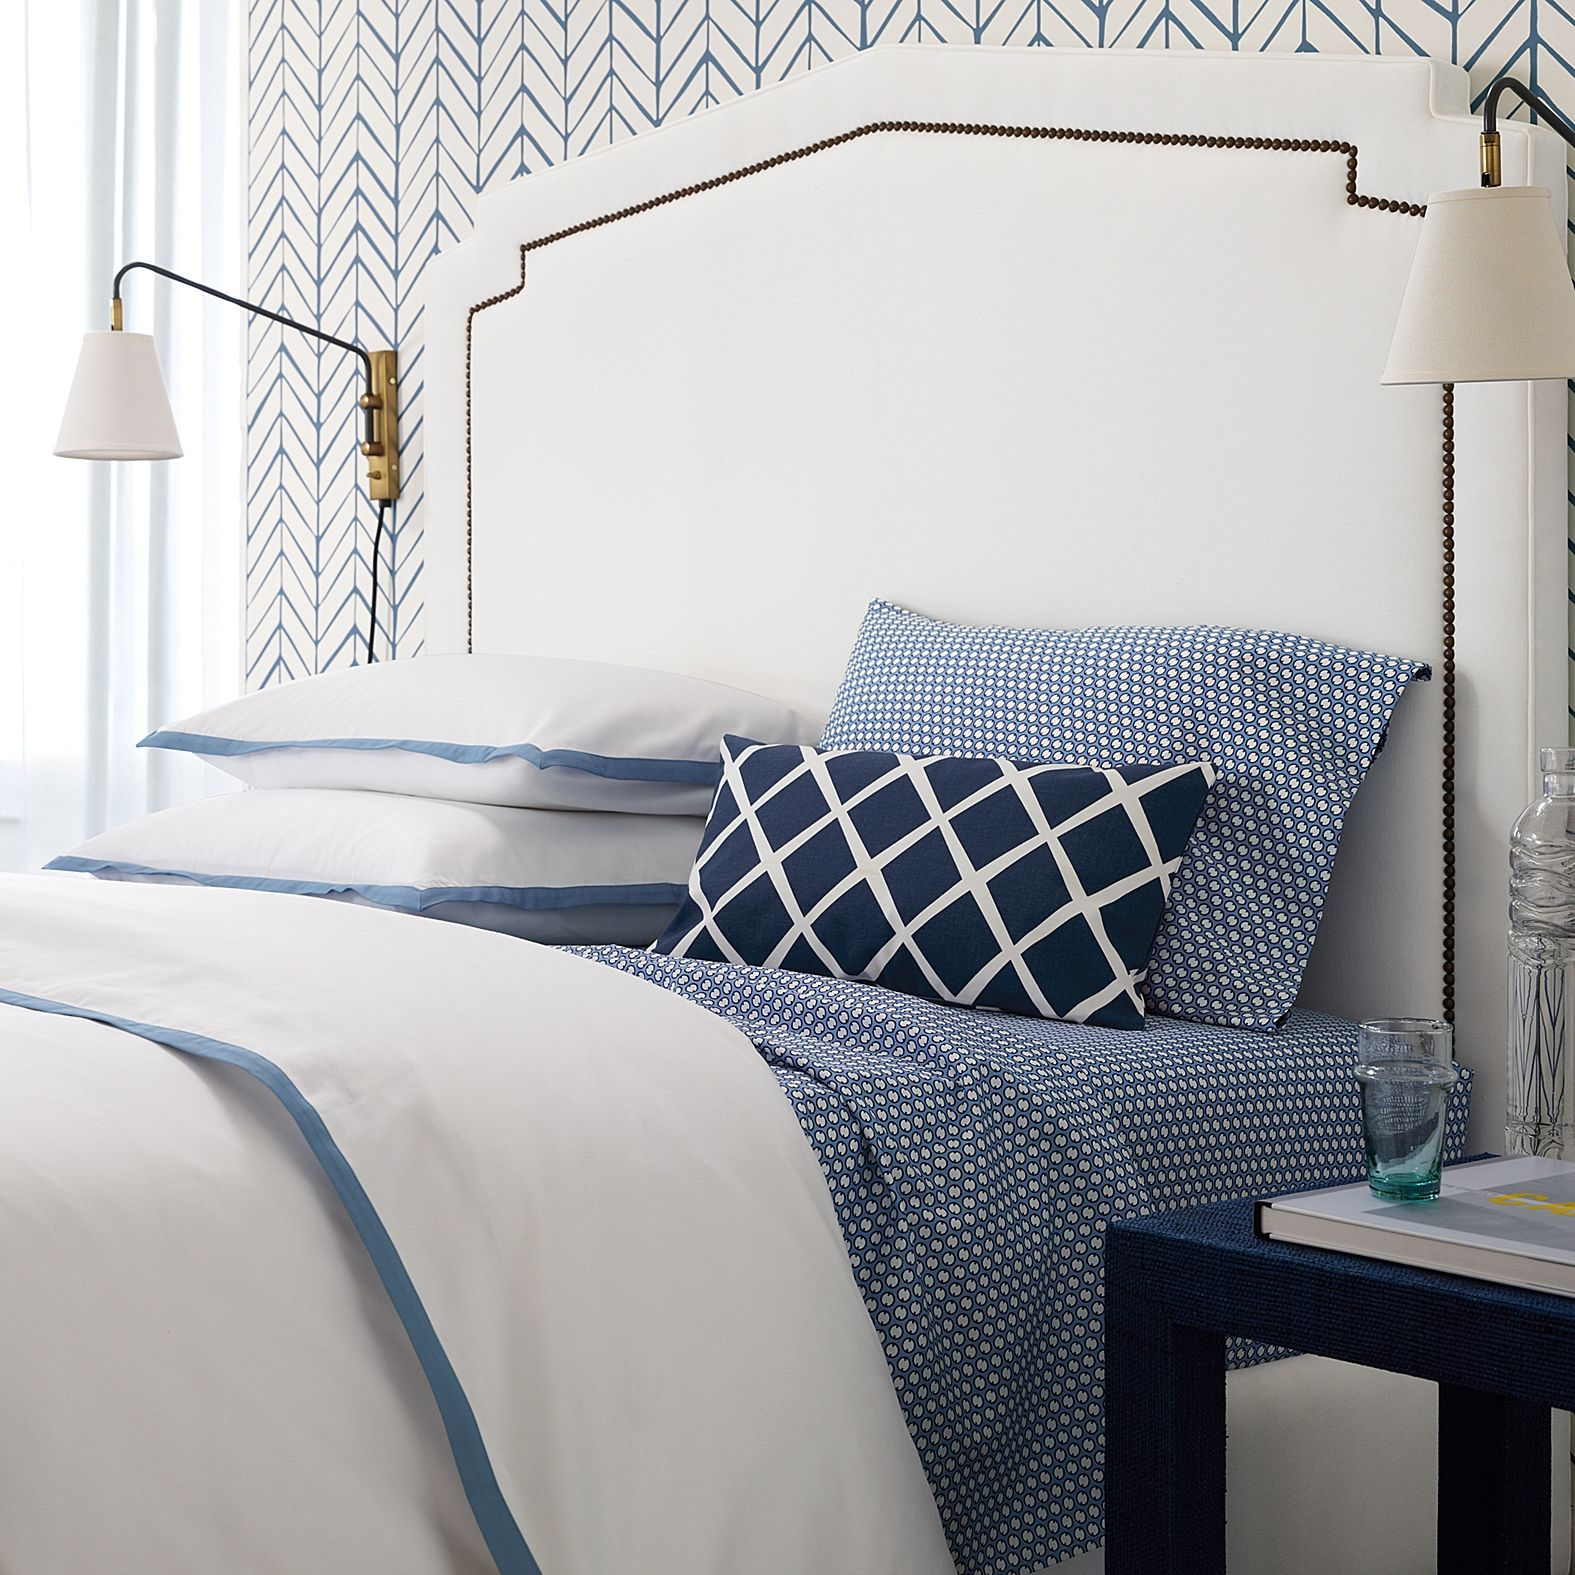 blue + white bedroom, feather wallpaper from Serena & Lily